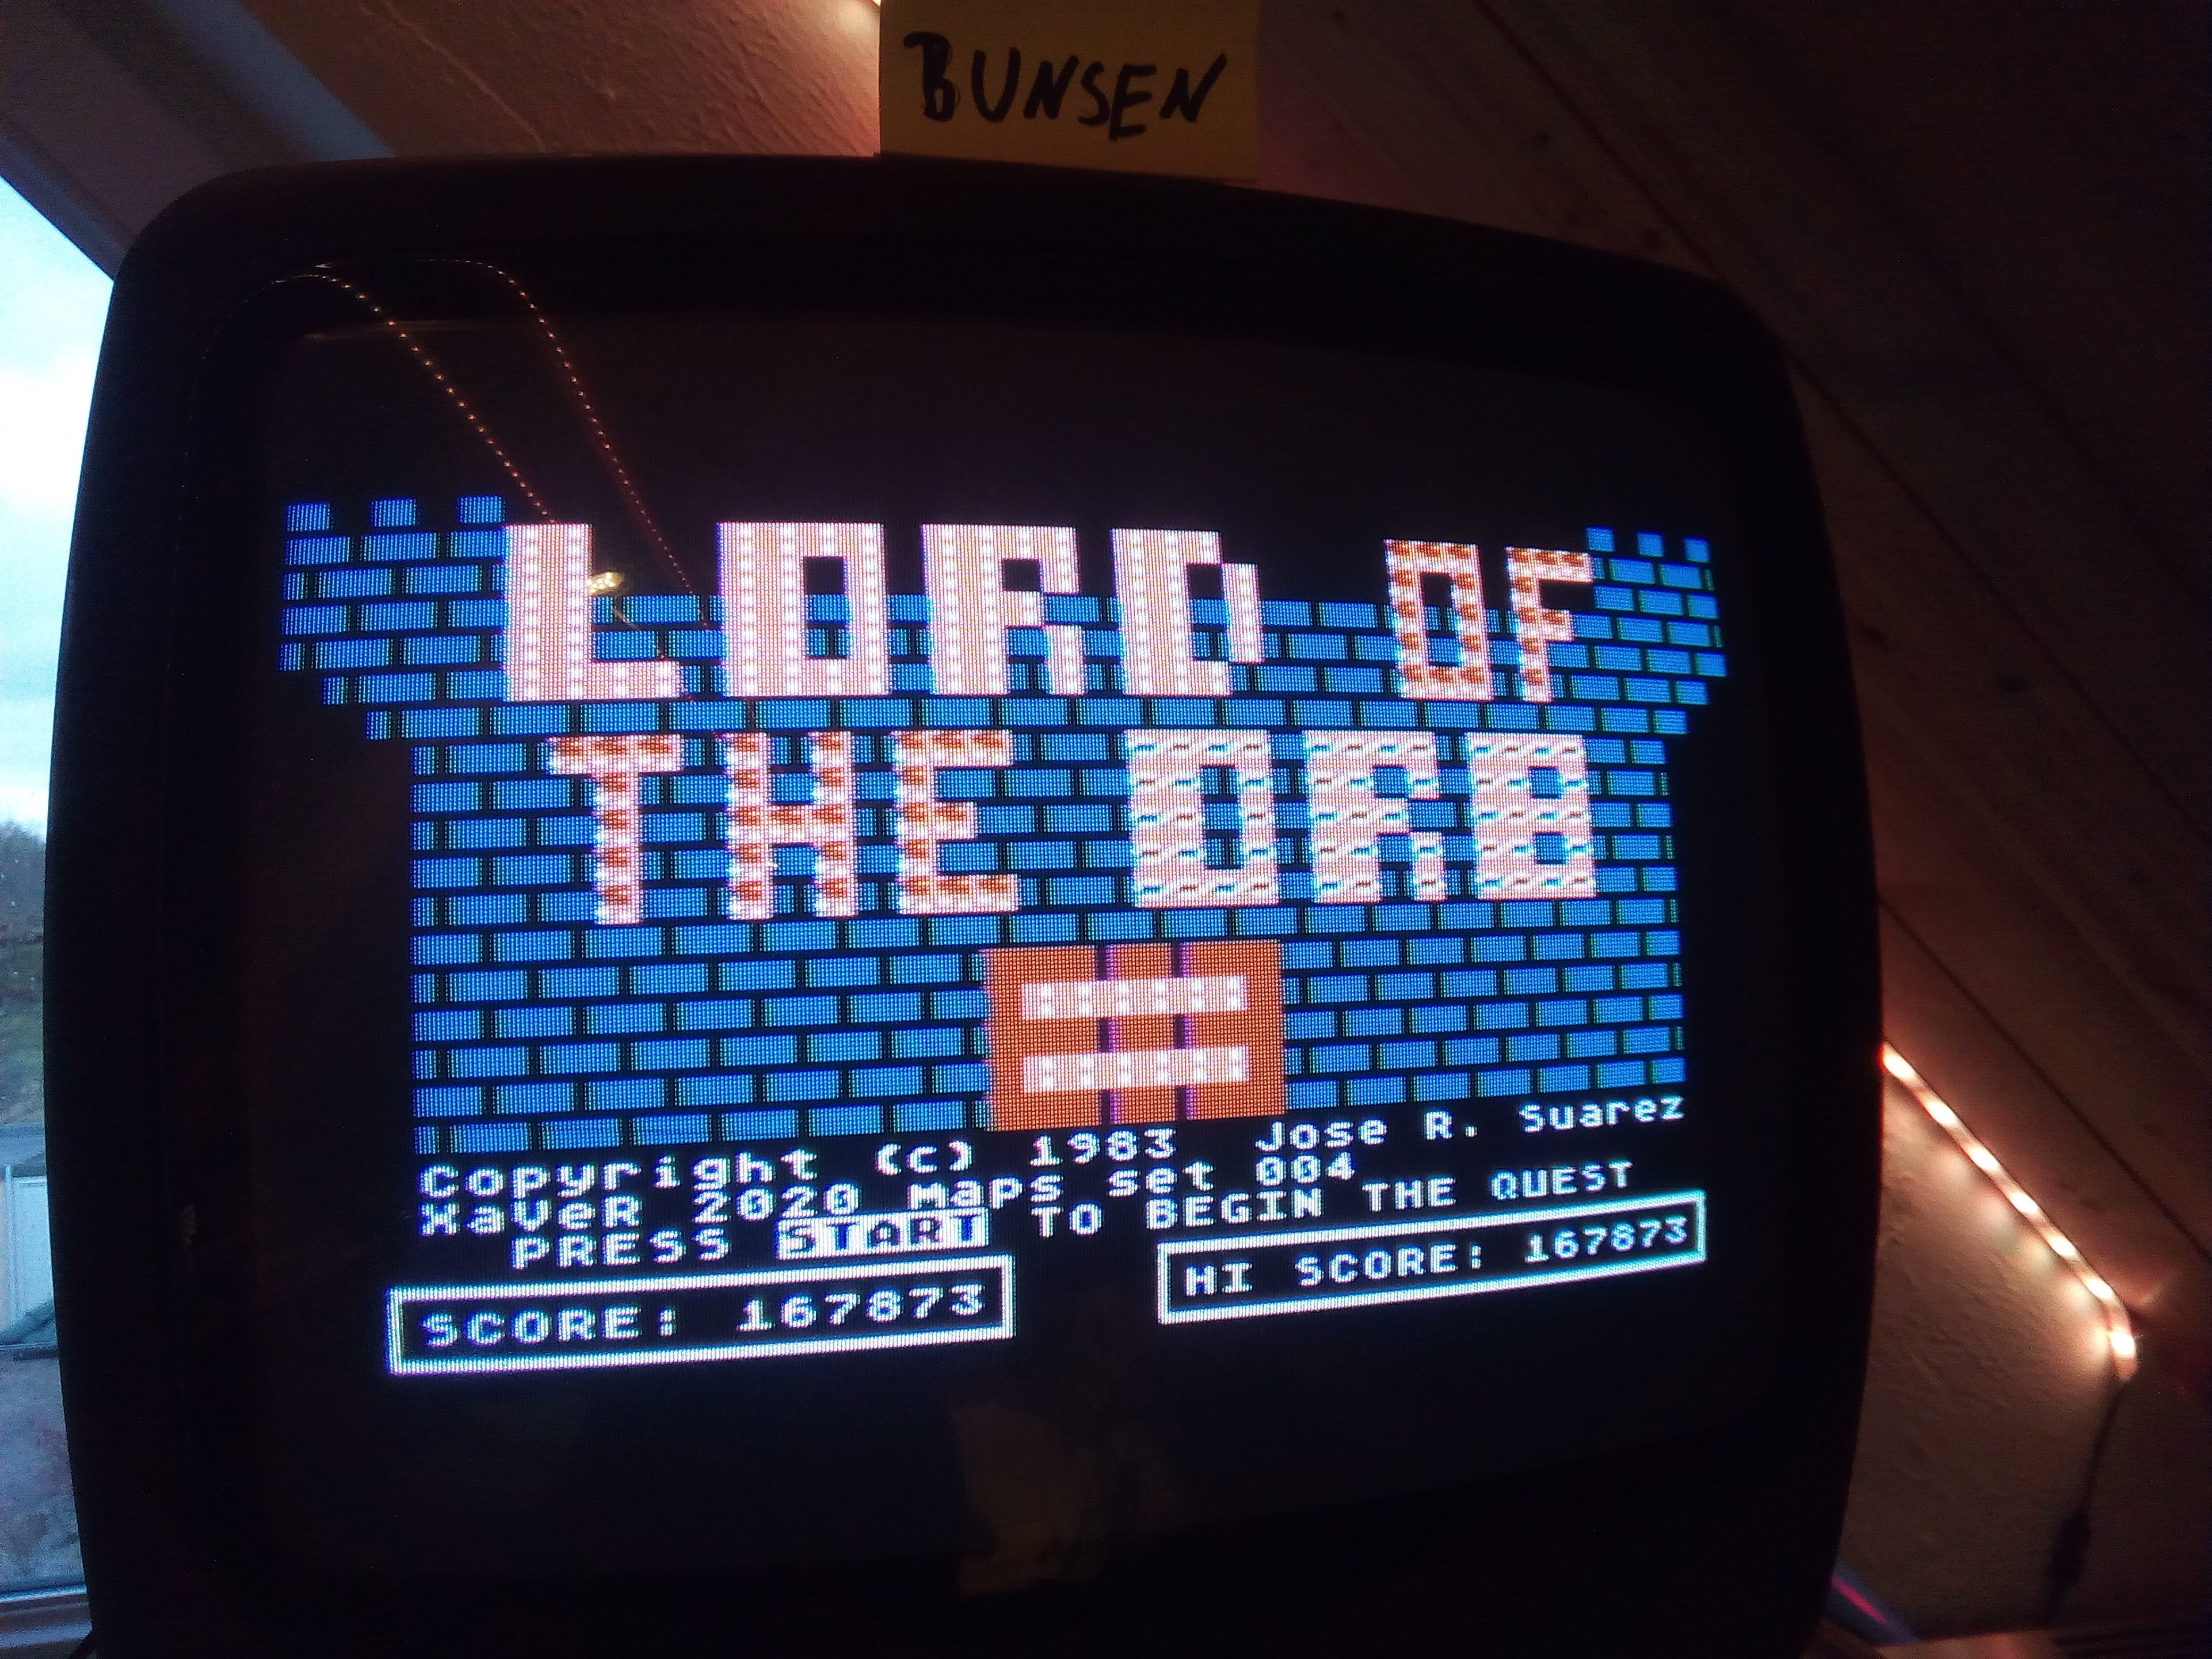 Bunsen: Lord of the Orb [Set 004] (Atari 400/800/XL/XE) 167,873 points on 2020-04-25 15:55:20